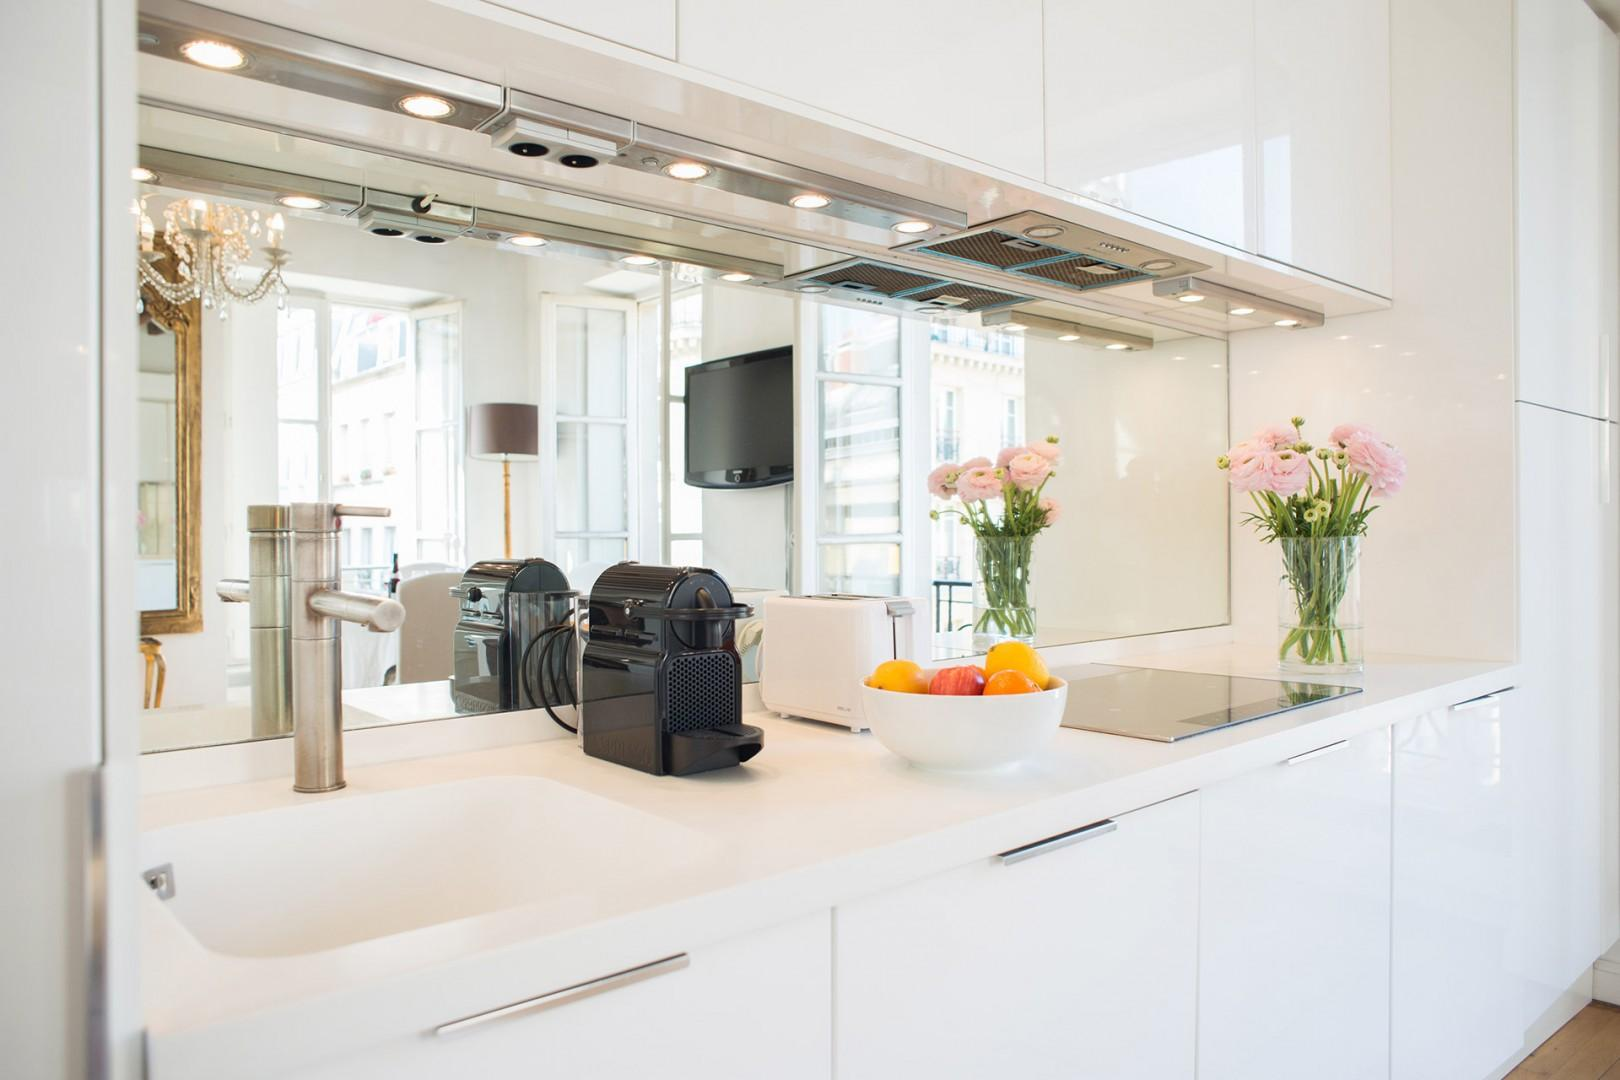 The fully-equipped kitchen has everything for your culinary needs.